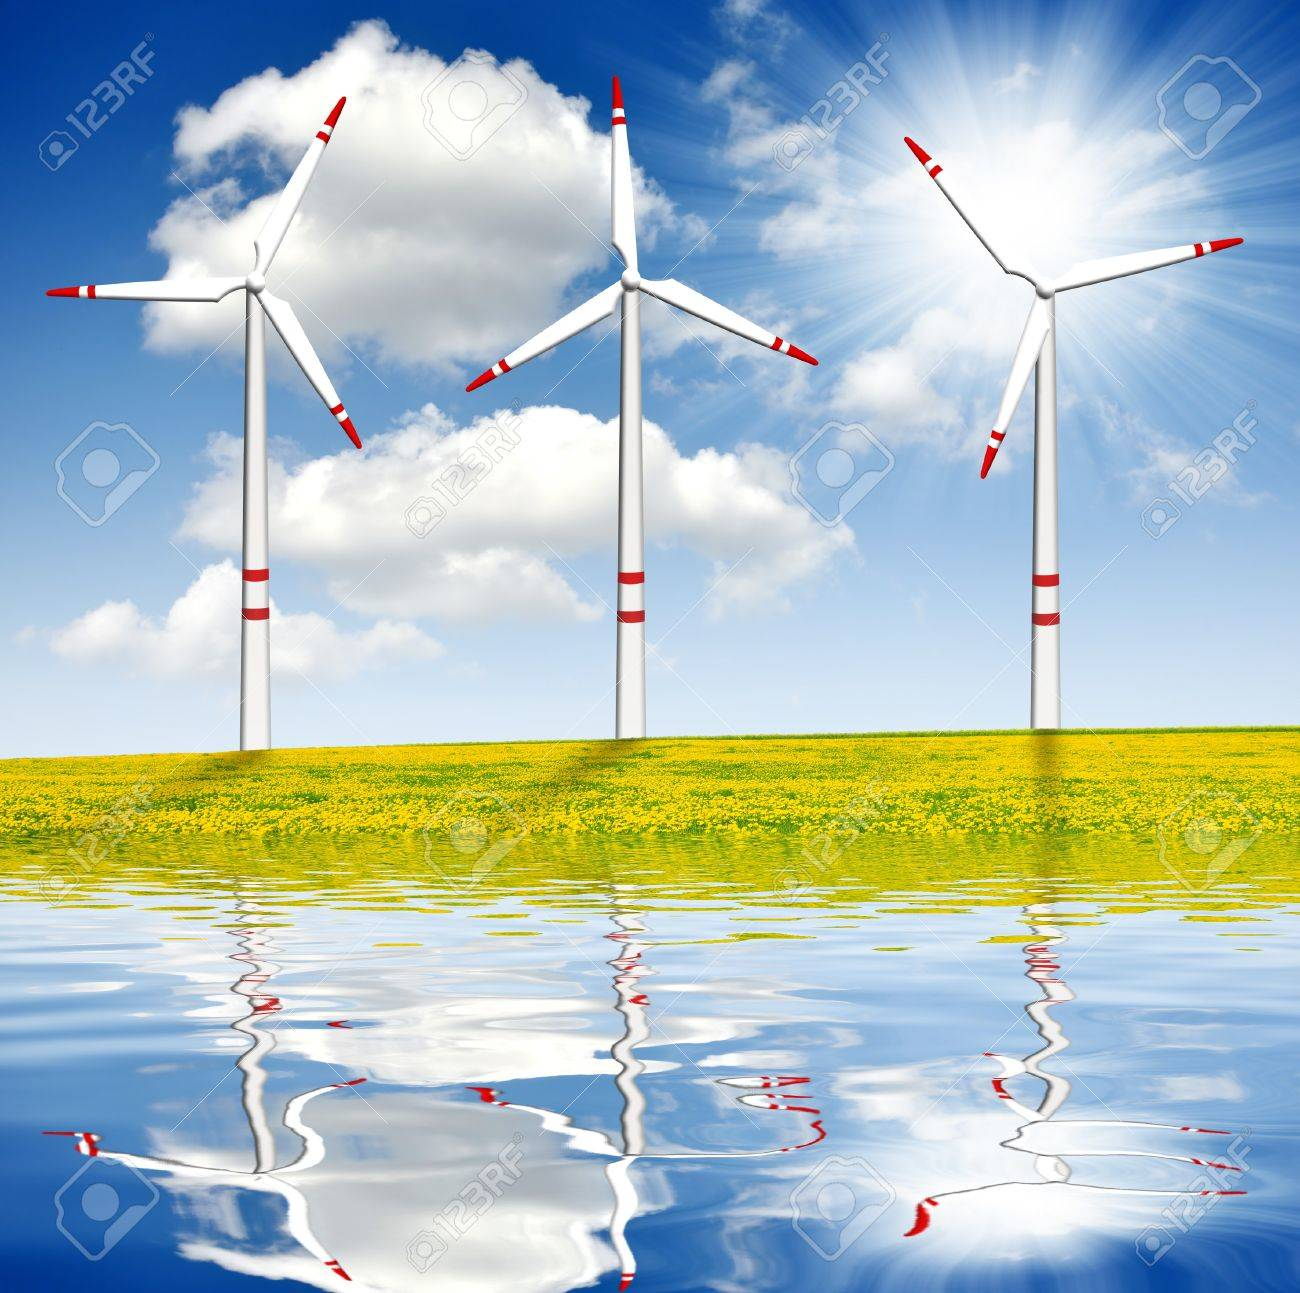 spring landscape with wind turbines - 14367127